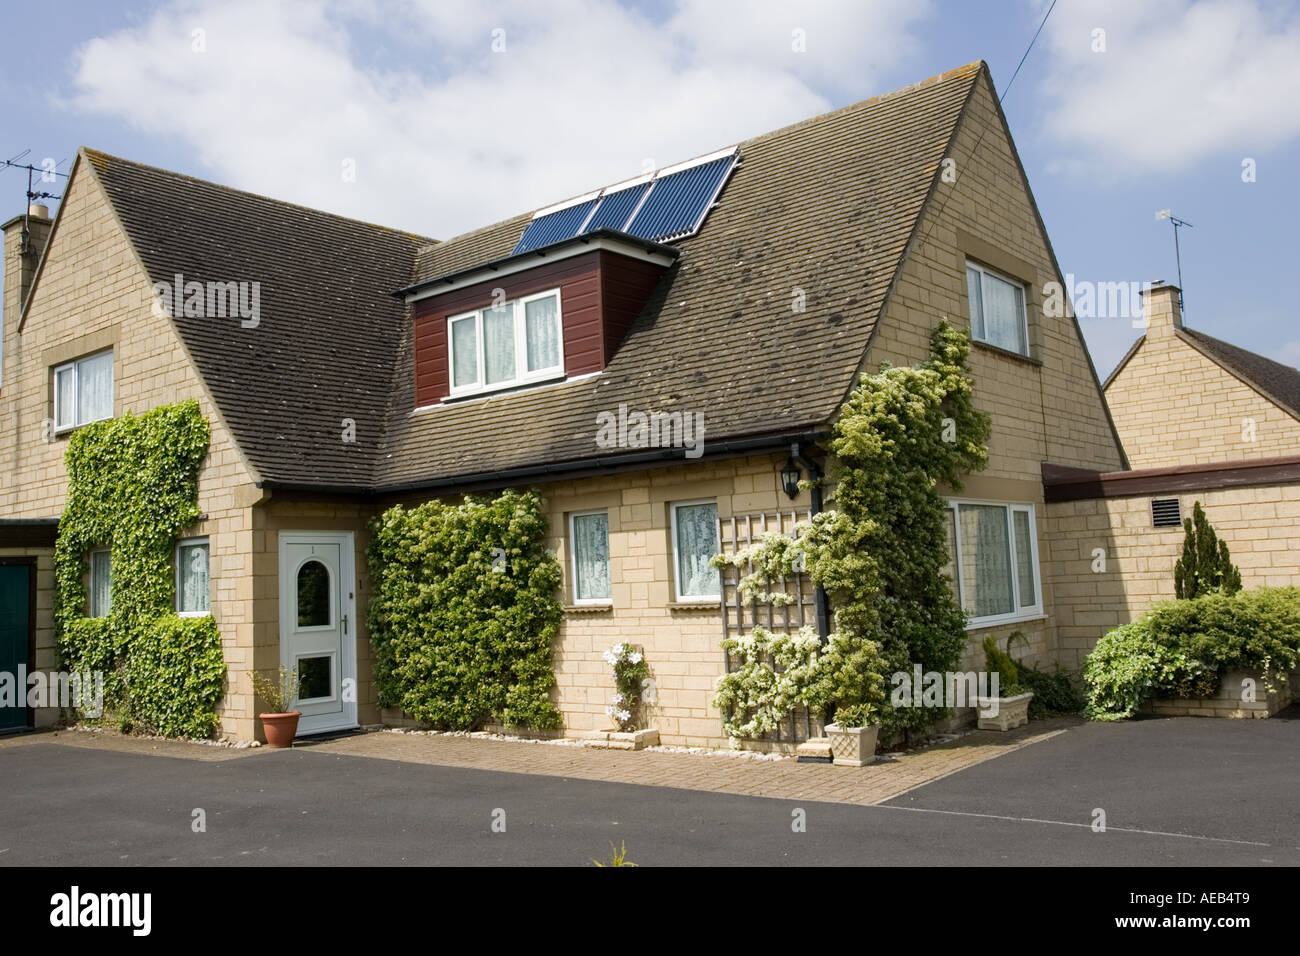 Modern solar thermal hot water panels with evacuated tubes on roof of detached house Cotswolds UK - Stock Image